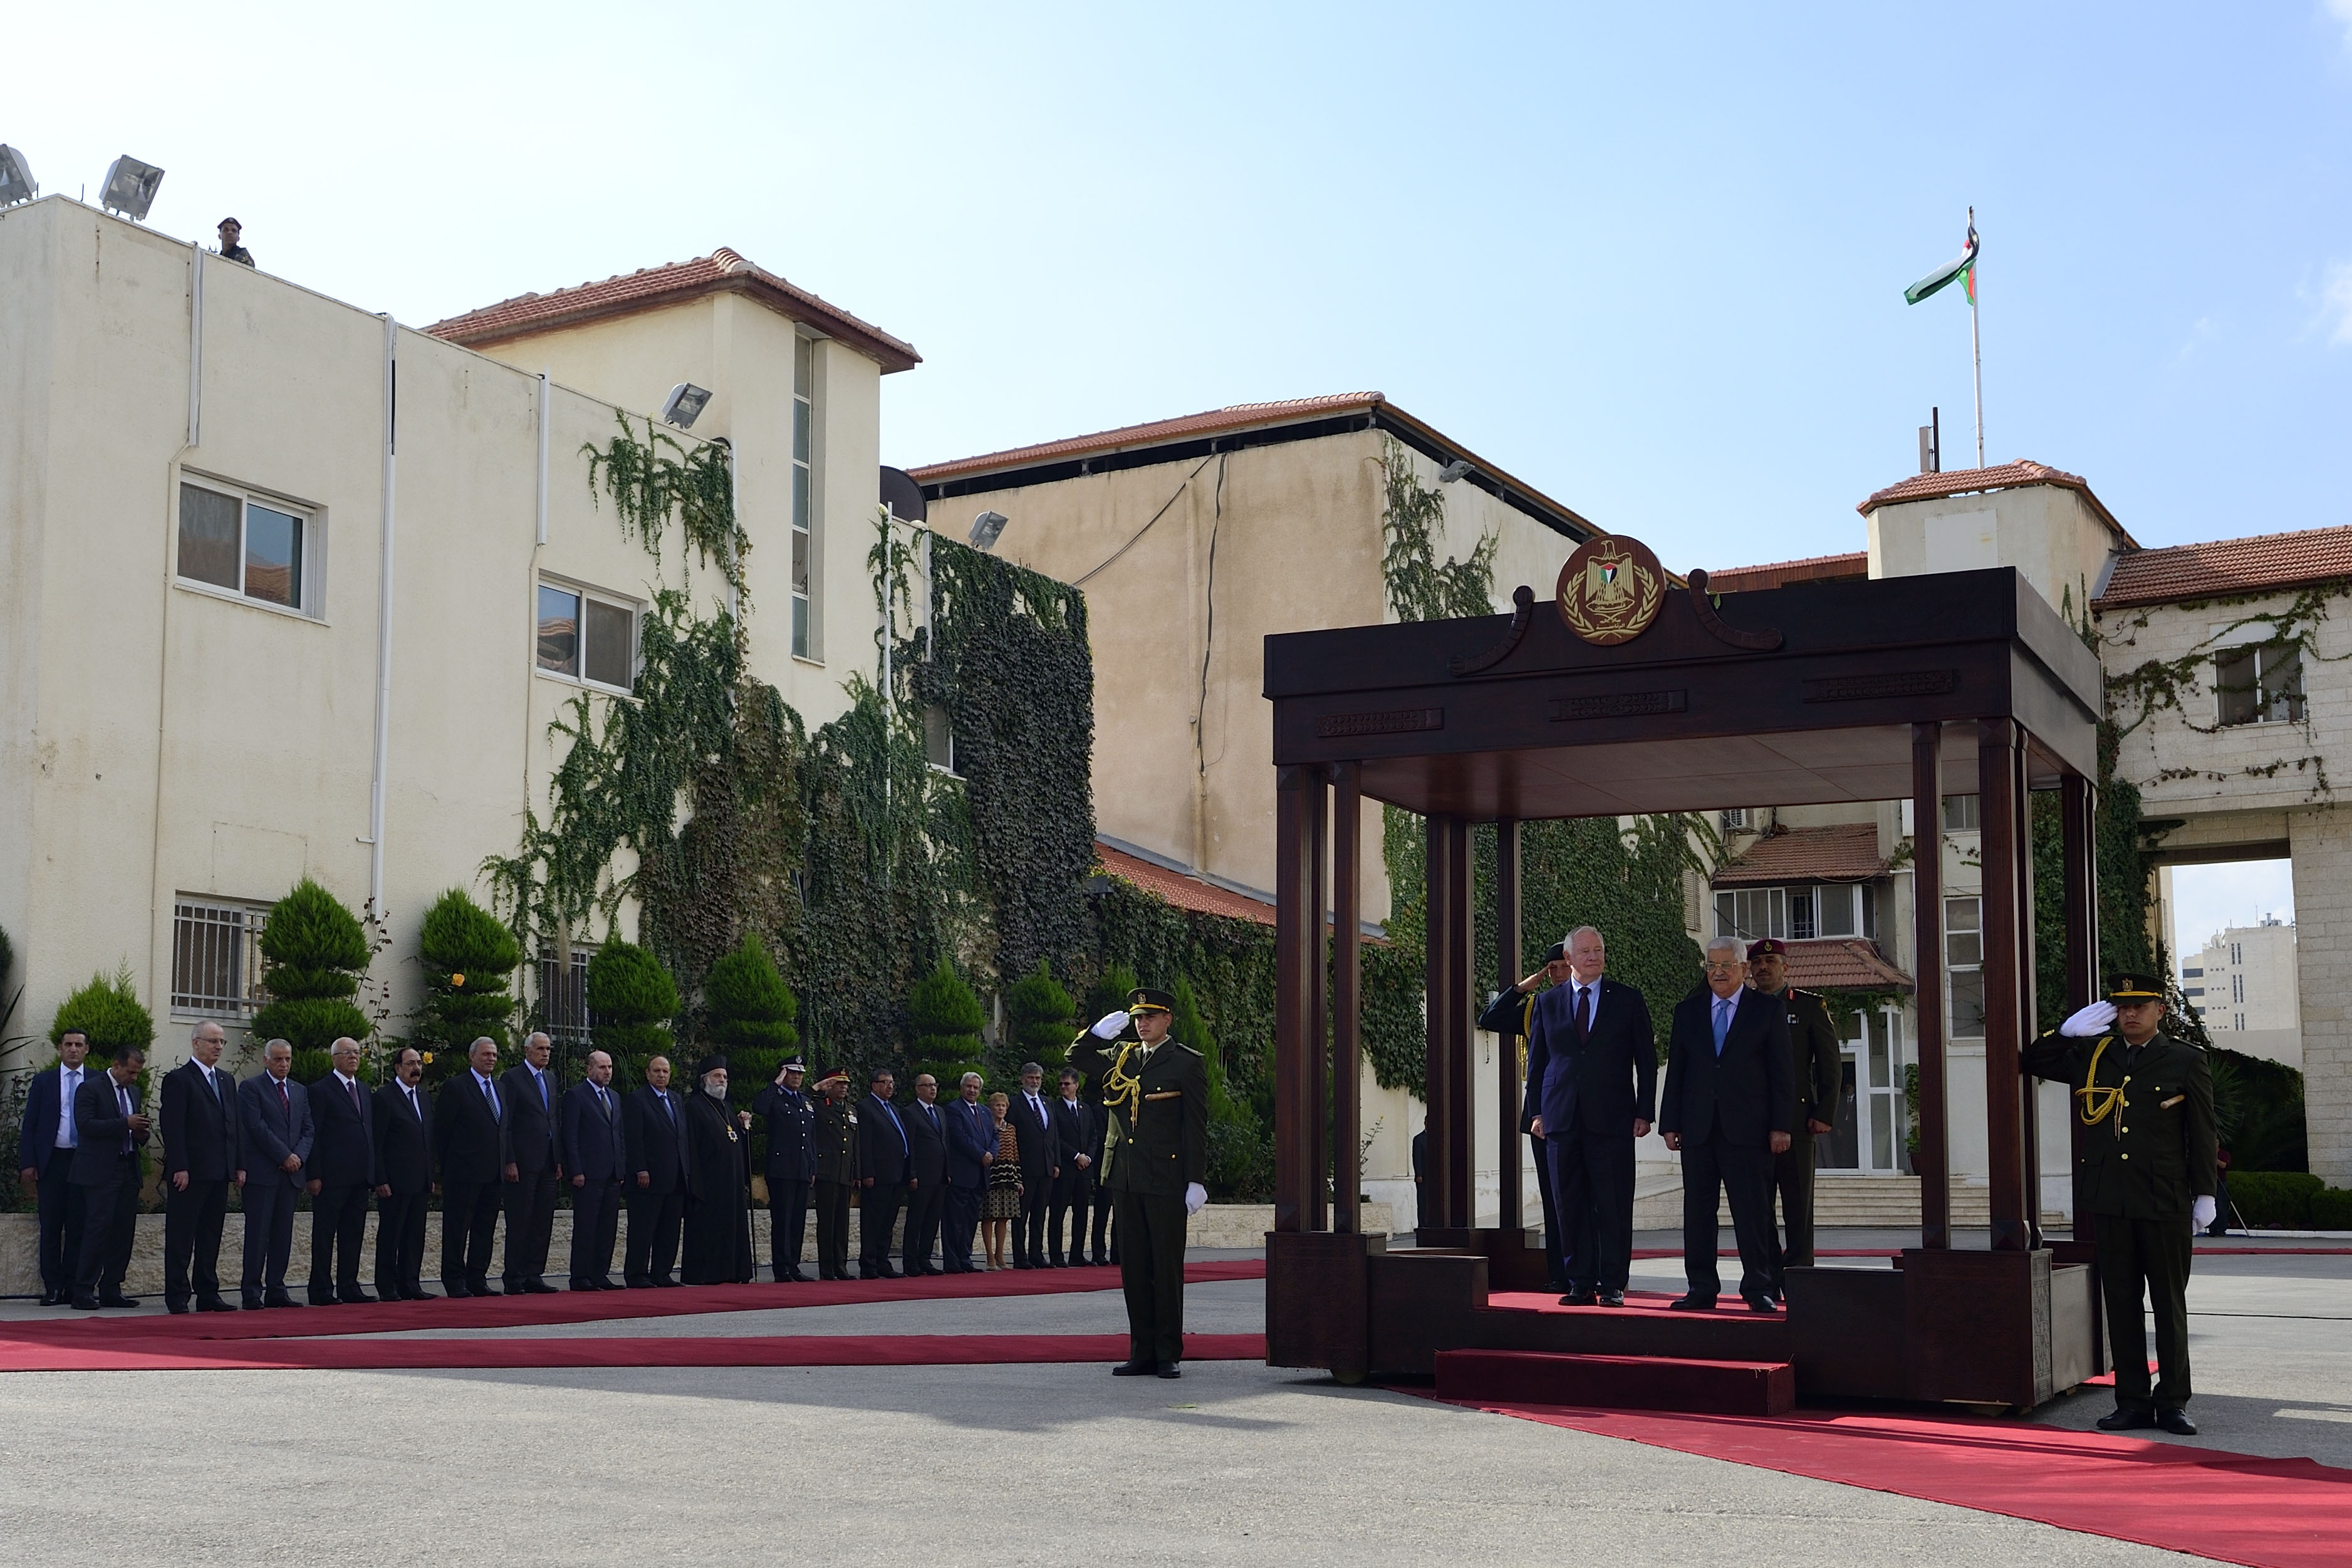 Upon their arrival in Ramallah on November 4, 2016, Their Excellencies were welcomed by His Excellency Mahmoud Abbas, President of the Palestinian Authority.